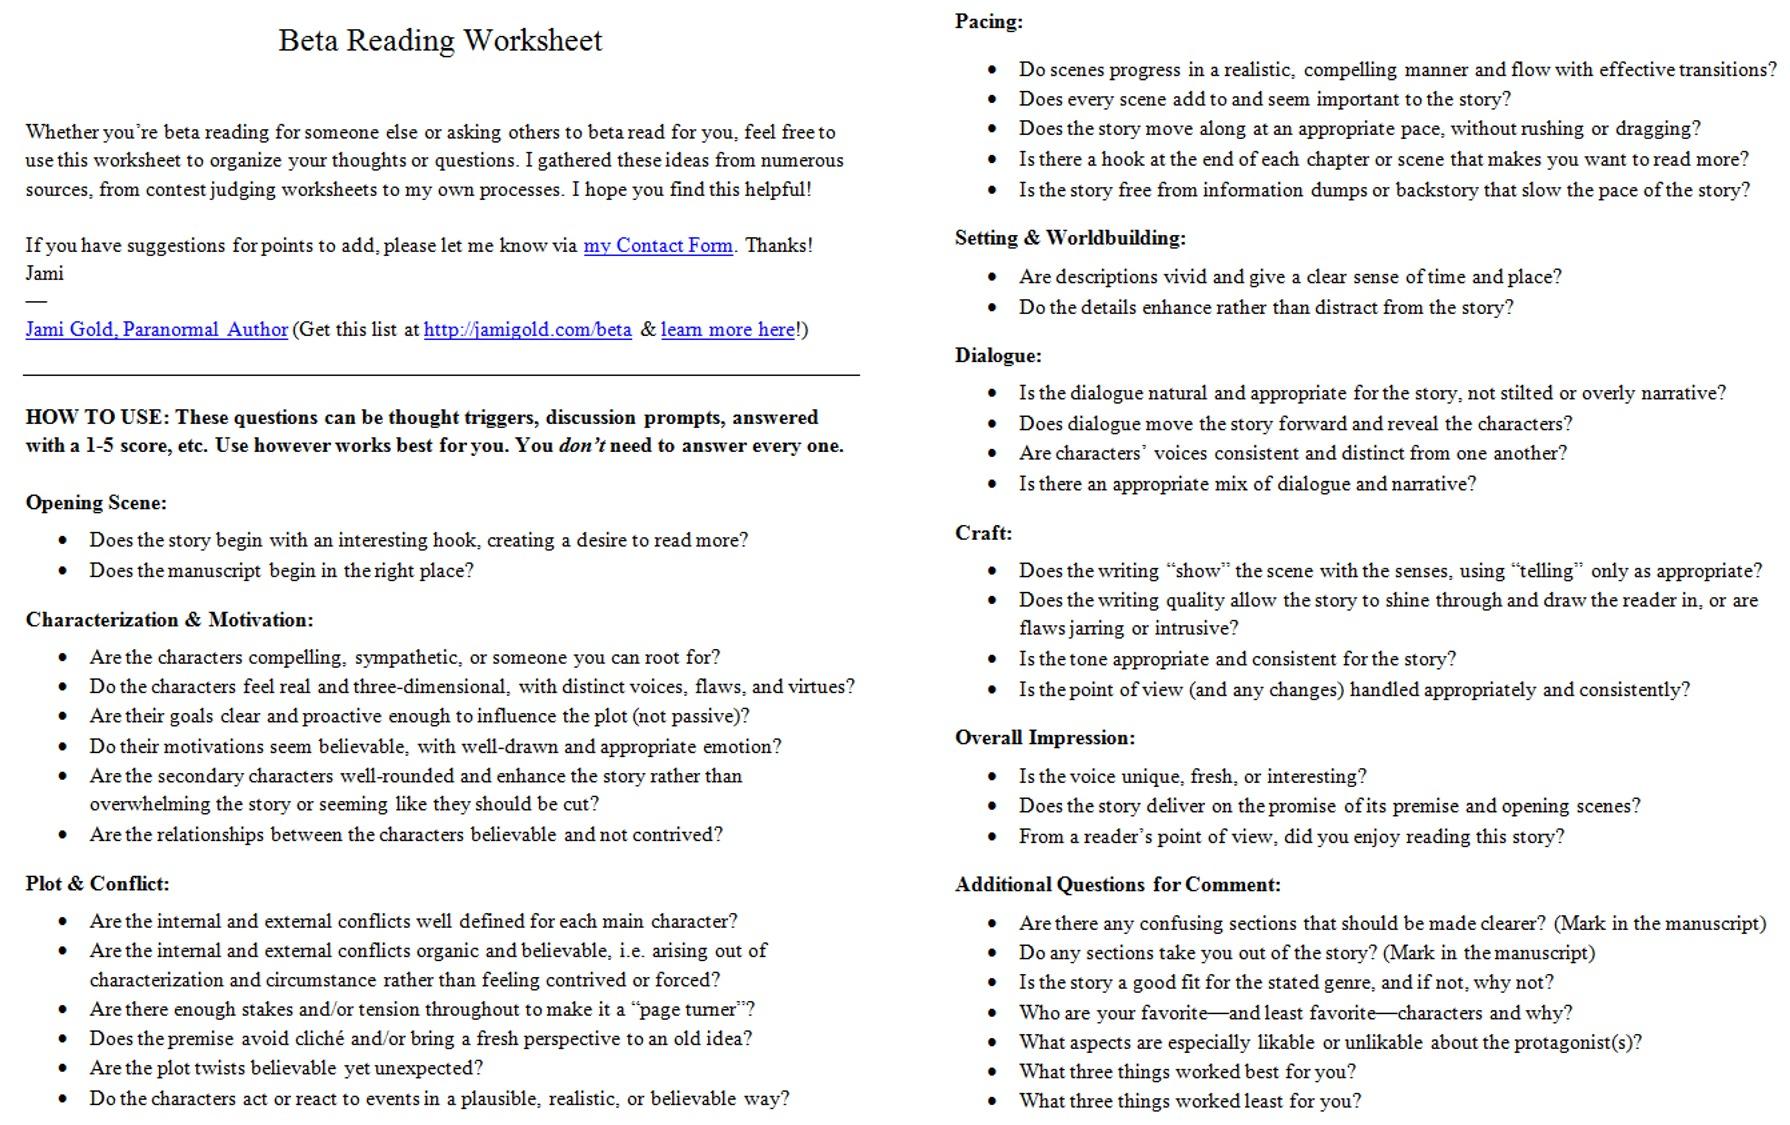 Aldiablosus  Prepossessing Worksheets For Writers  Jami Gold Paranormal Author With Exciting Screen Shot Of The Twopage Beta Reading Worksheet With Astonishing Free Printable Touch Math Worksheets Also Yahtzee Probability Worksheet In Addition Second Grade Map Skills Worksheets And Short A Sound Worksheet As Well As Super Teacher Worksheets Order Of Operations Additionally Prepositions Worksheets Pdf From Jamigoldcom With Aldiablosus  Exciting Worksheets For Writers  Jami Gold Paranormal Author With Astonishing Screen Shot Of The Twopage Beta Reading Worksheet And Prepossessing Free Printable Touch Math Worksheets Also Yahtzee Probability Worksheet In Addition Second Grade Map Skills Worksheets From Jamigoldcom